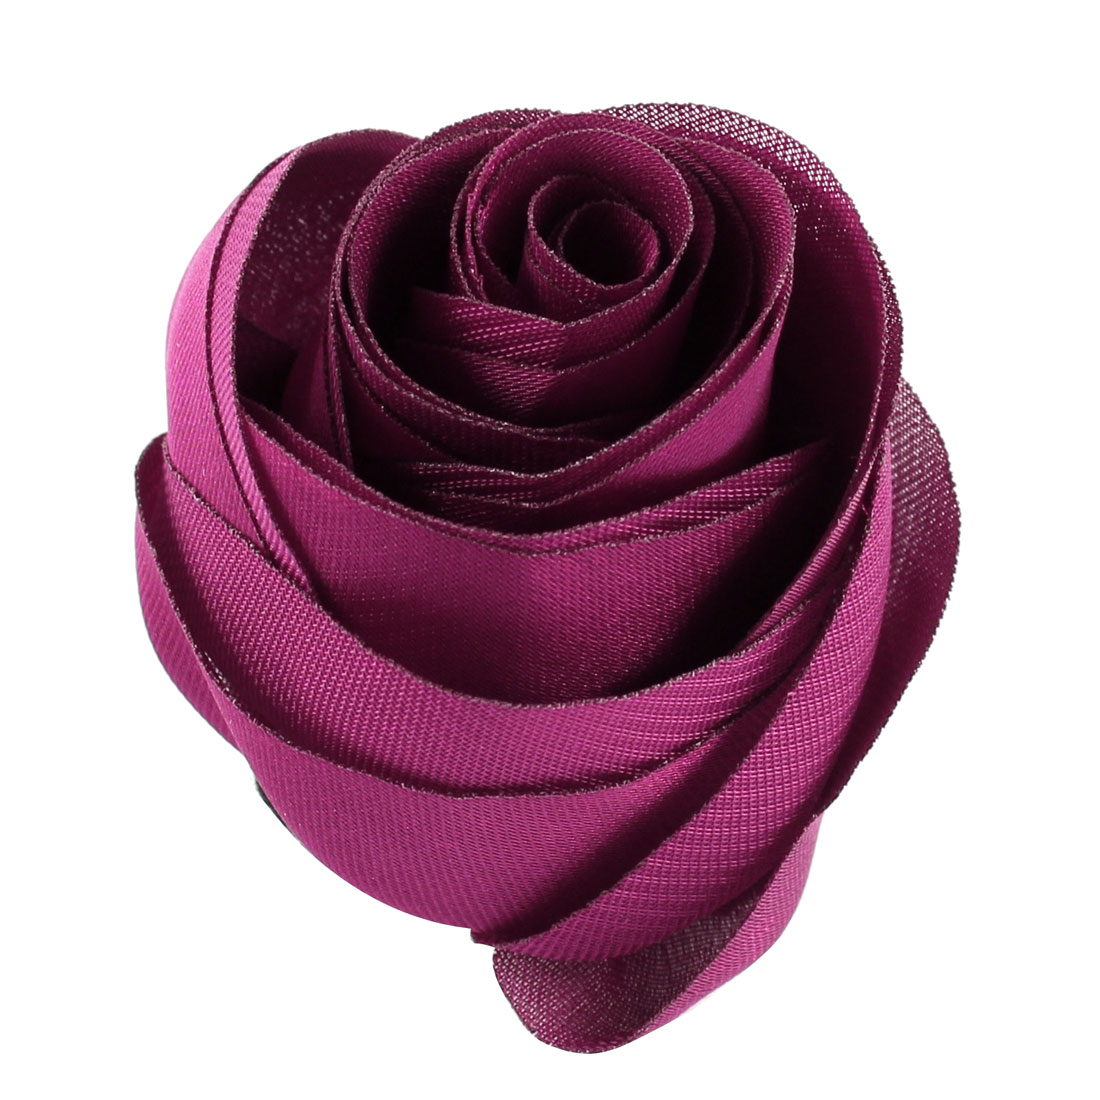 Woman Chiffon Fabric Flower Shape Corsage Brooch Pin Eggplant Color